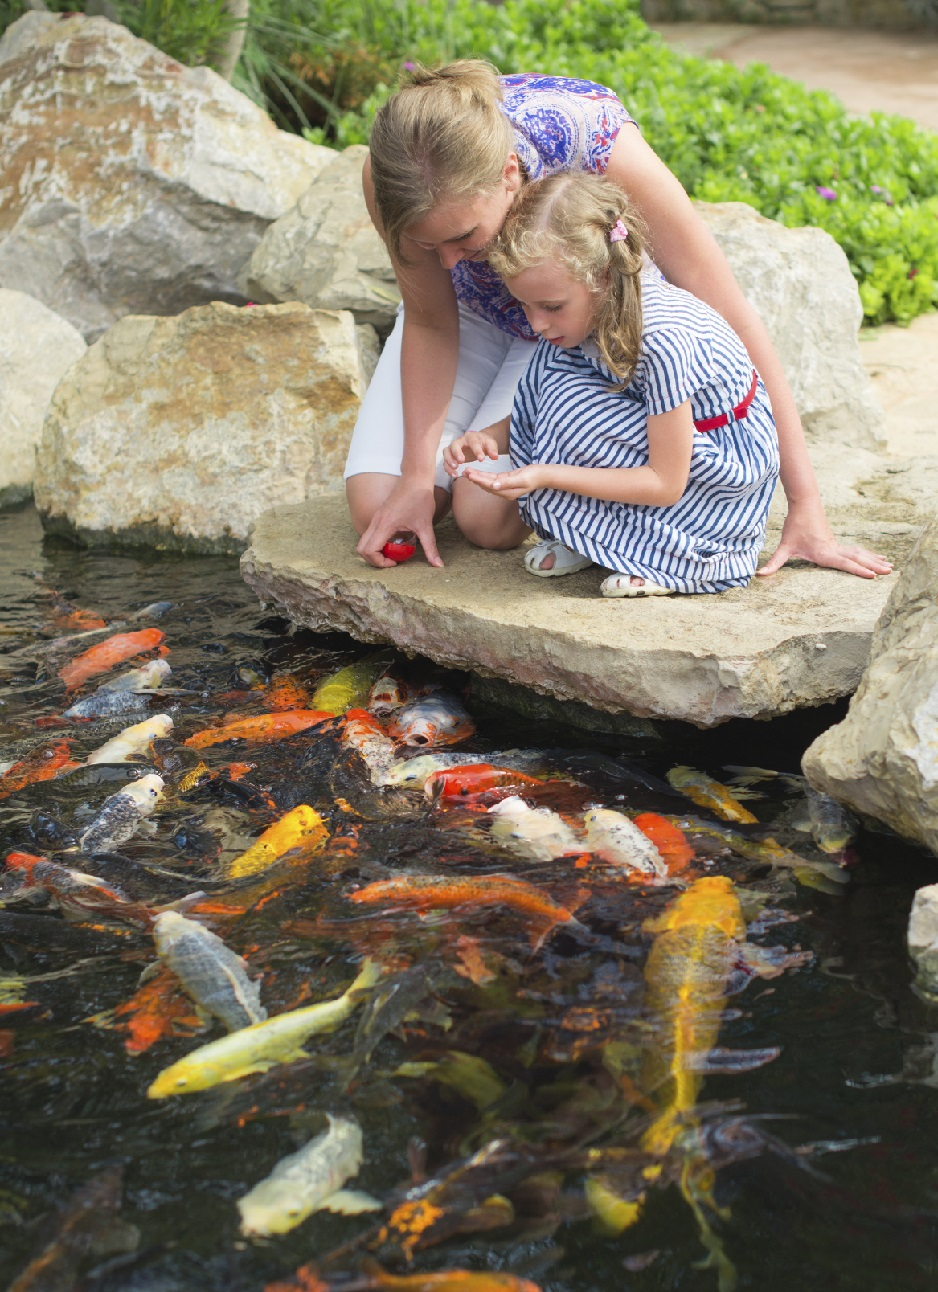 pond fish for your backyard pond blain u0027s farm u0026 fleet blog